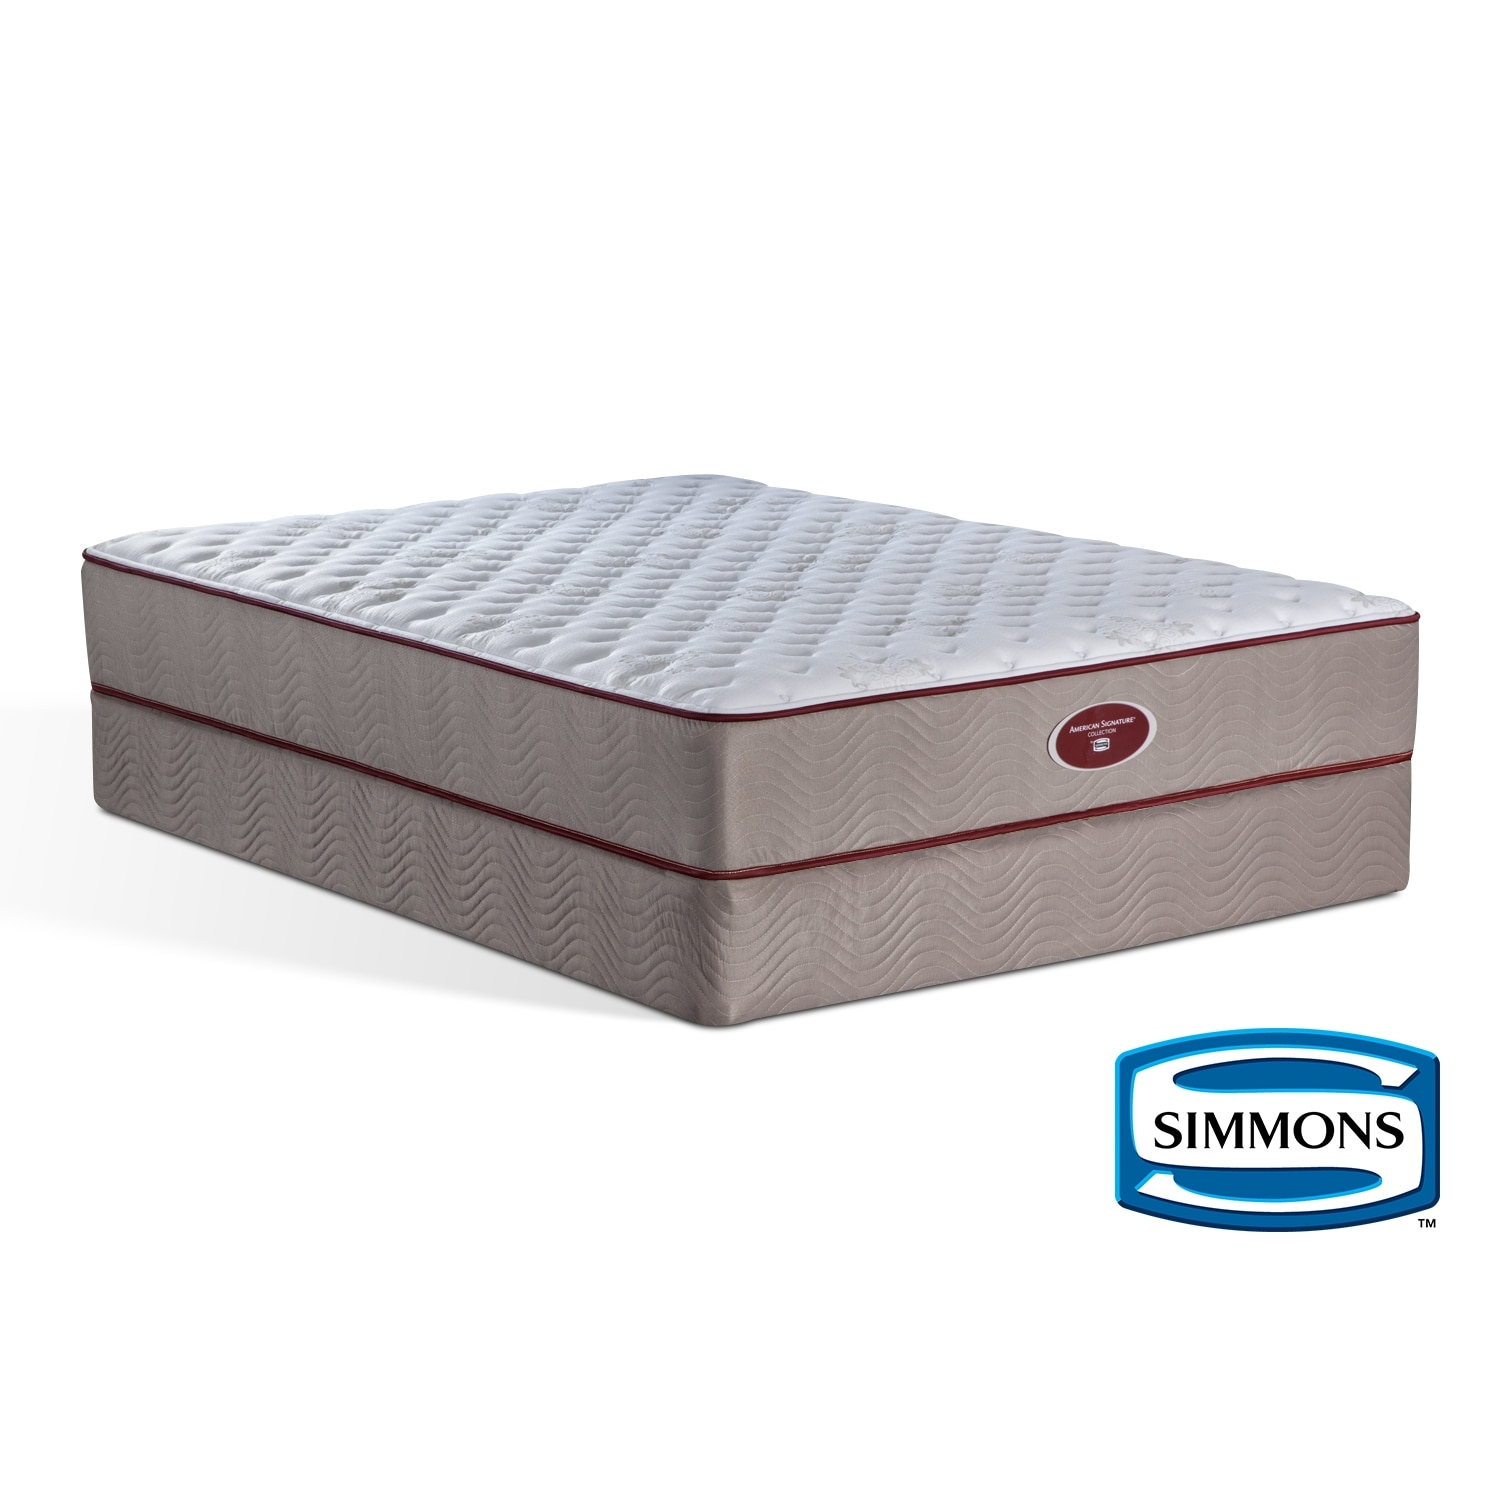 Meadow Glen Firm Mattresses And Bedding Full Mattress